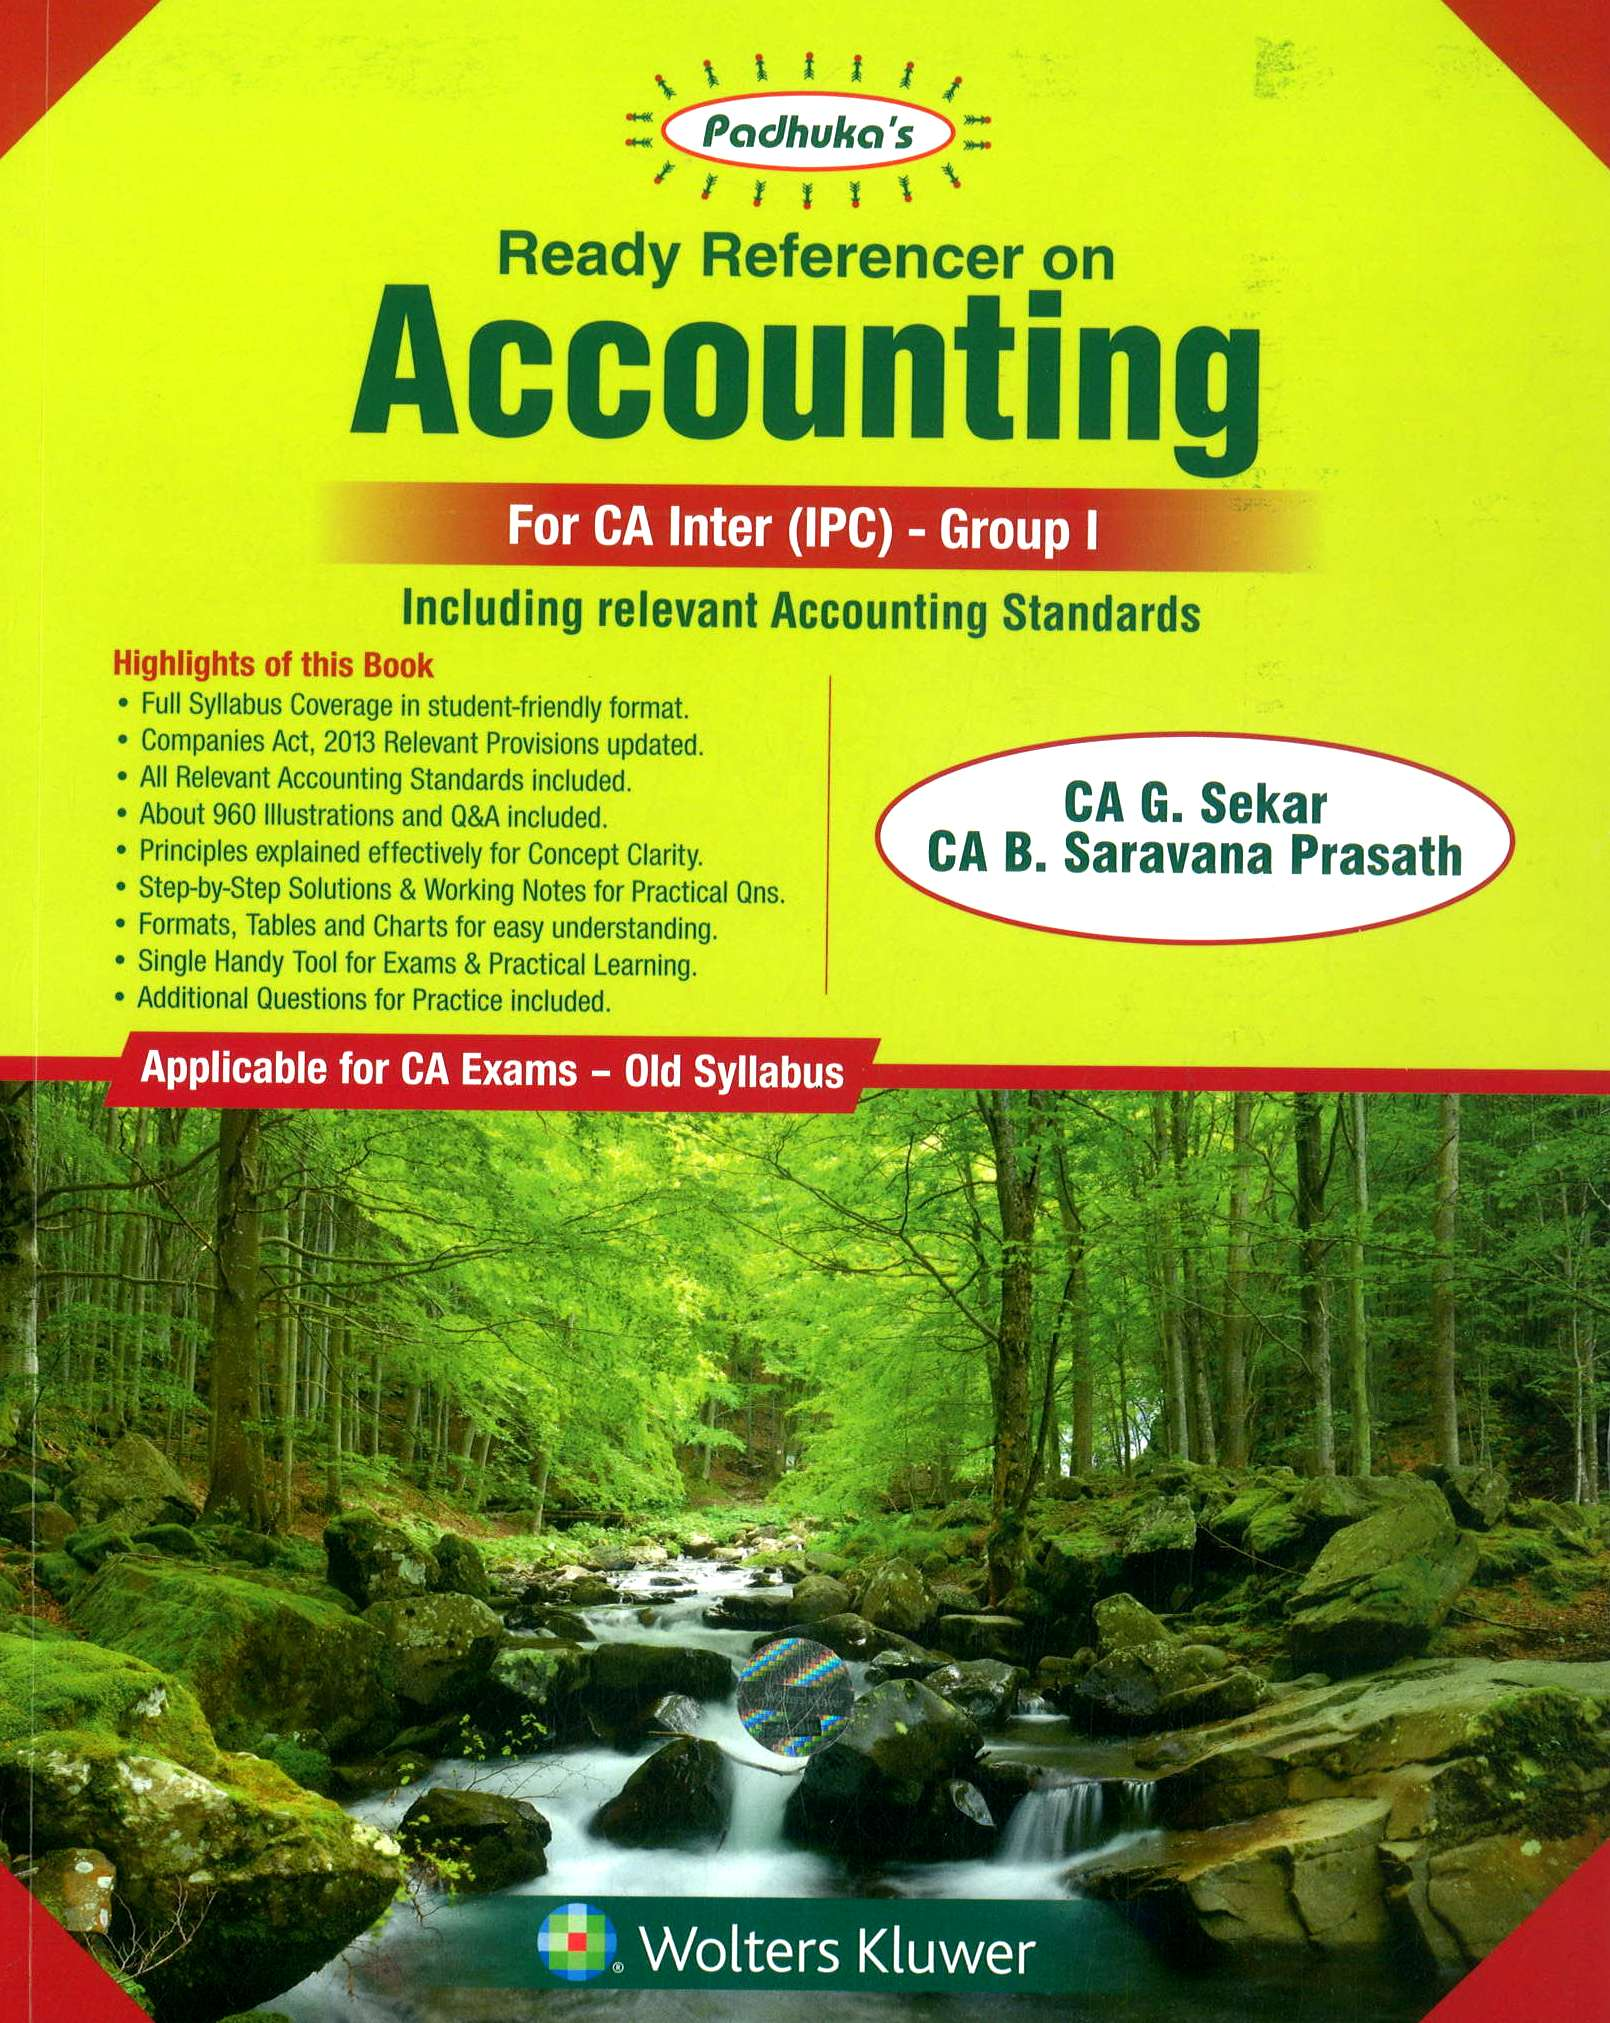 CCH Paduka's Ready Reference on Accounting for CA Inter new syllabus (IPC) -Group I  by CA G. Sekar and CA B. Saravana Prasath (Wolters Kluwer Publishing) Edition  2018 for Nov 2018 Exam